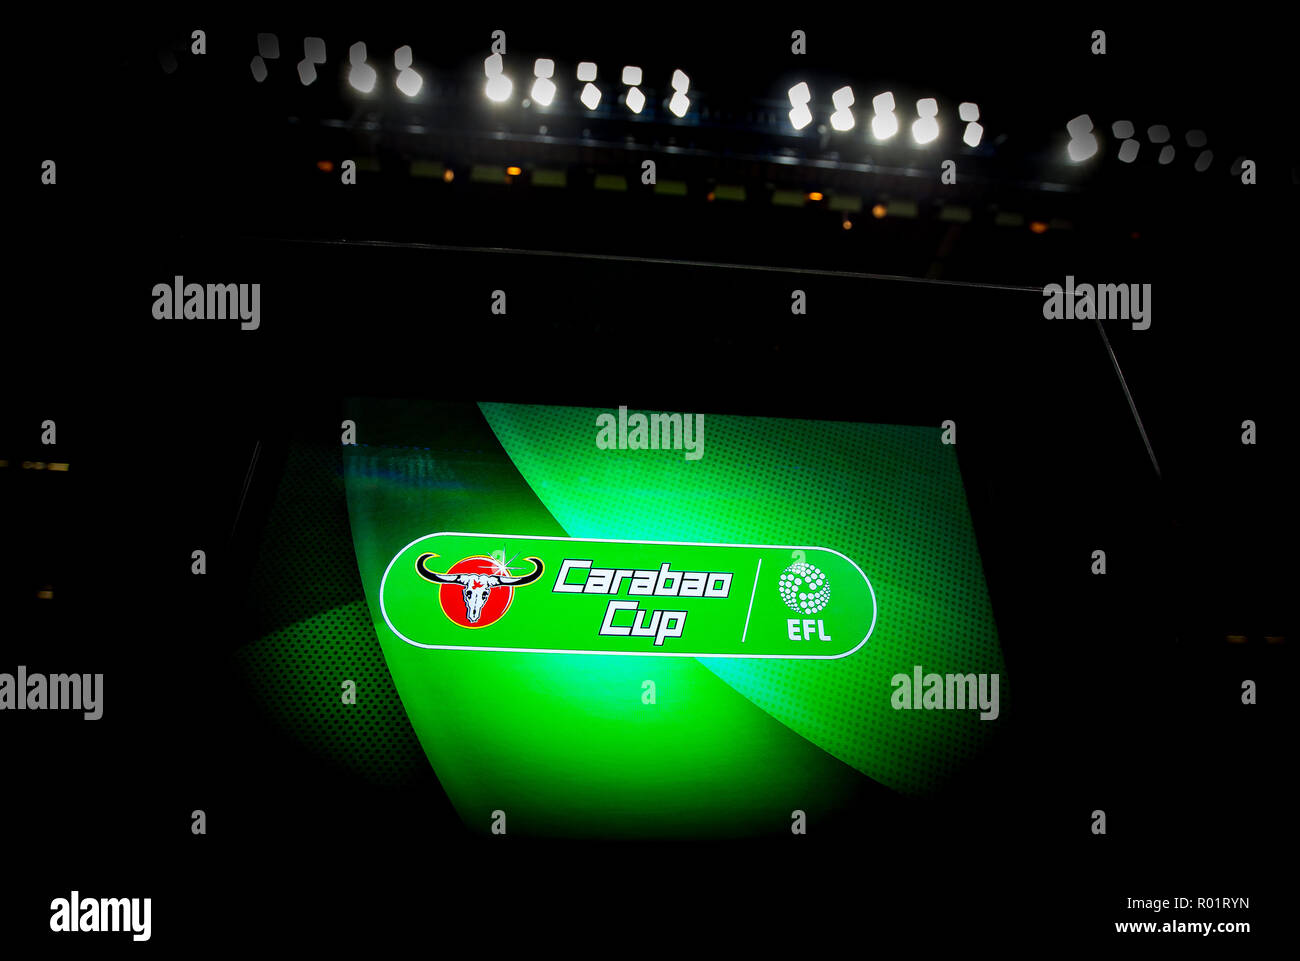 London, UK. 31st October, 2018. VAR unit pre match during the Carabao Cup round of 16 match between Chelsea and Derby County at Stamford Bridge, London, England on 31 October 2018. Photo by Andy Rowland. Credit: Andrew Rowland/Alamy Live News./Alamy Live News - Stock Image